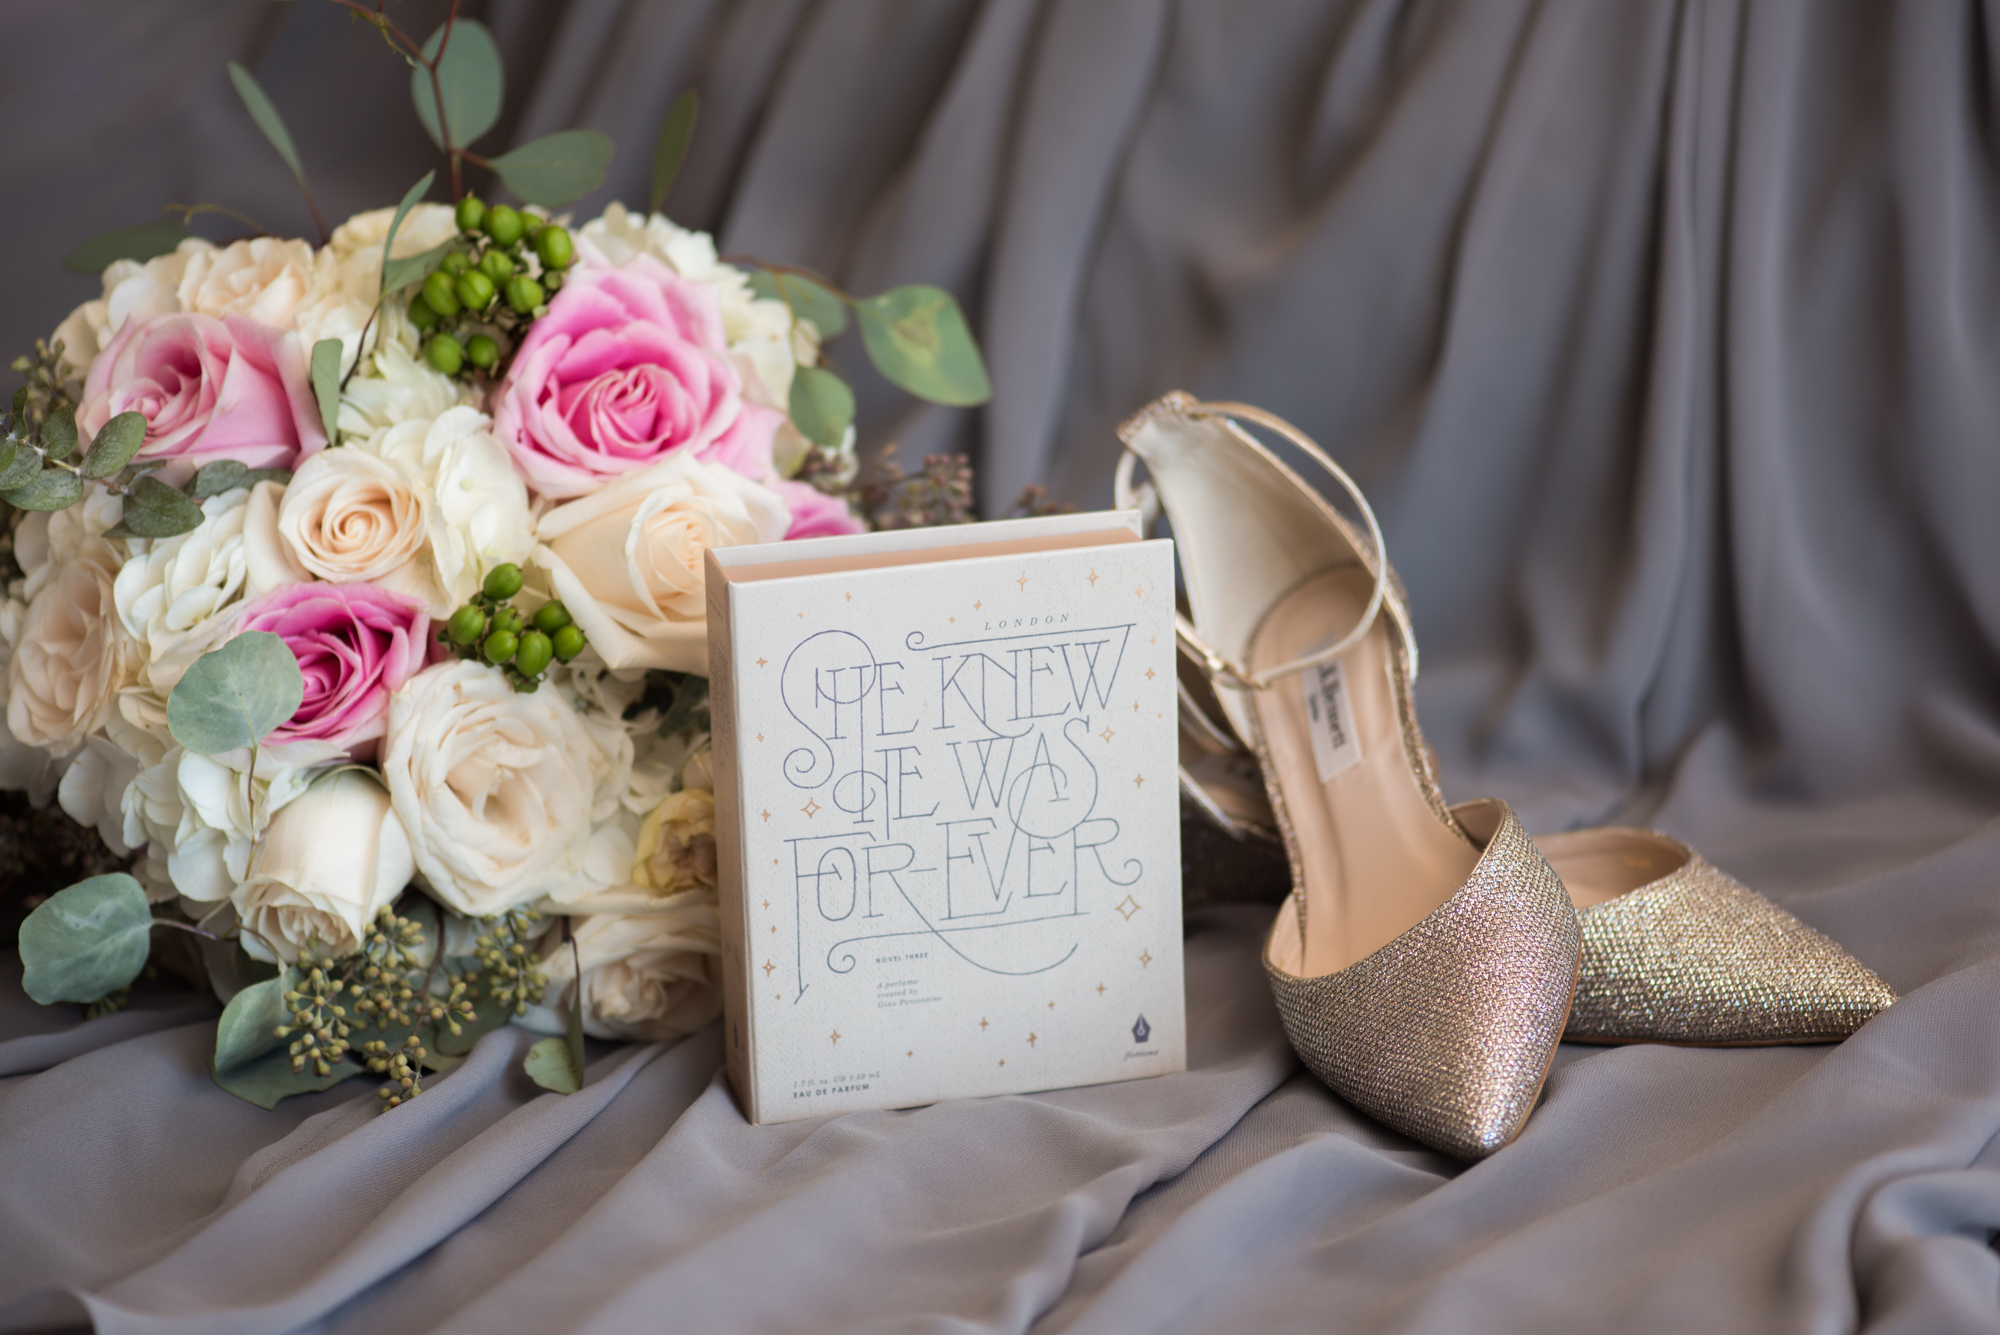 Pink + White Wedding Bouqut, Gold Wedding Shoes - Travel Themed Wedding - Caitlin Gerres Photography